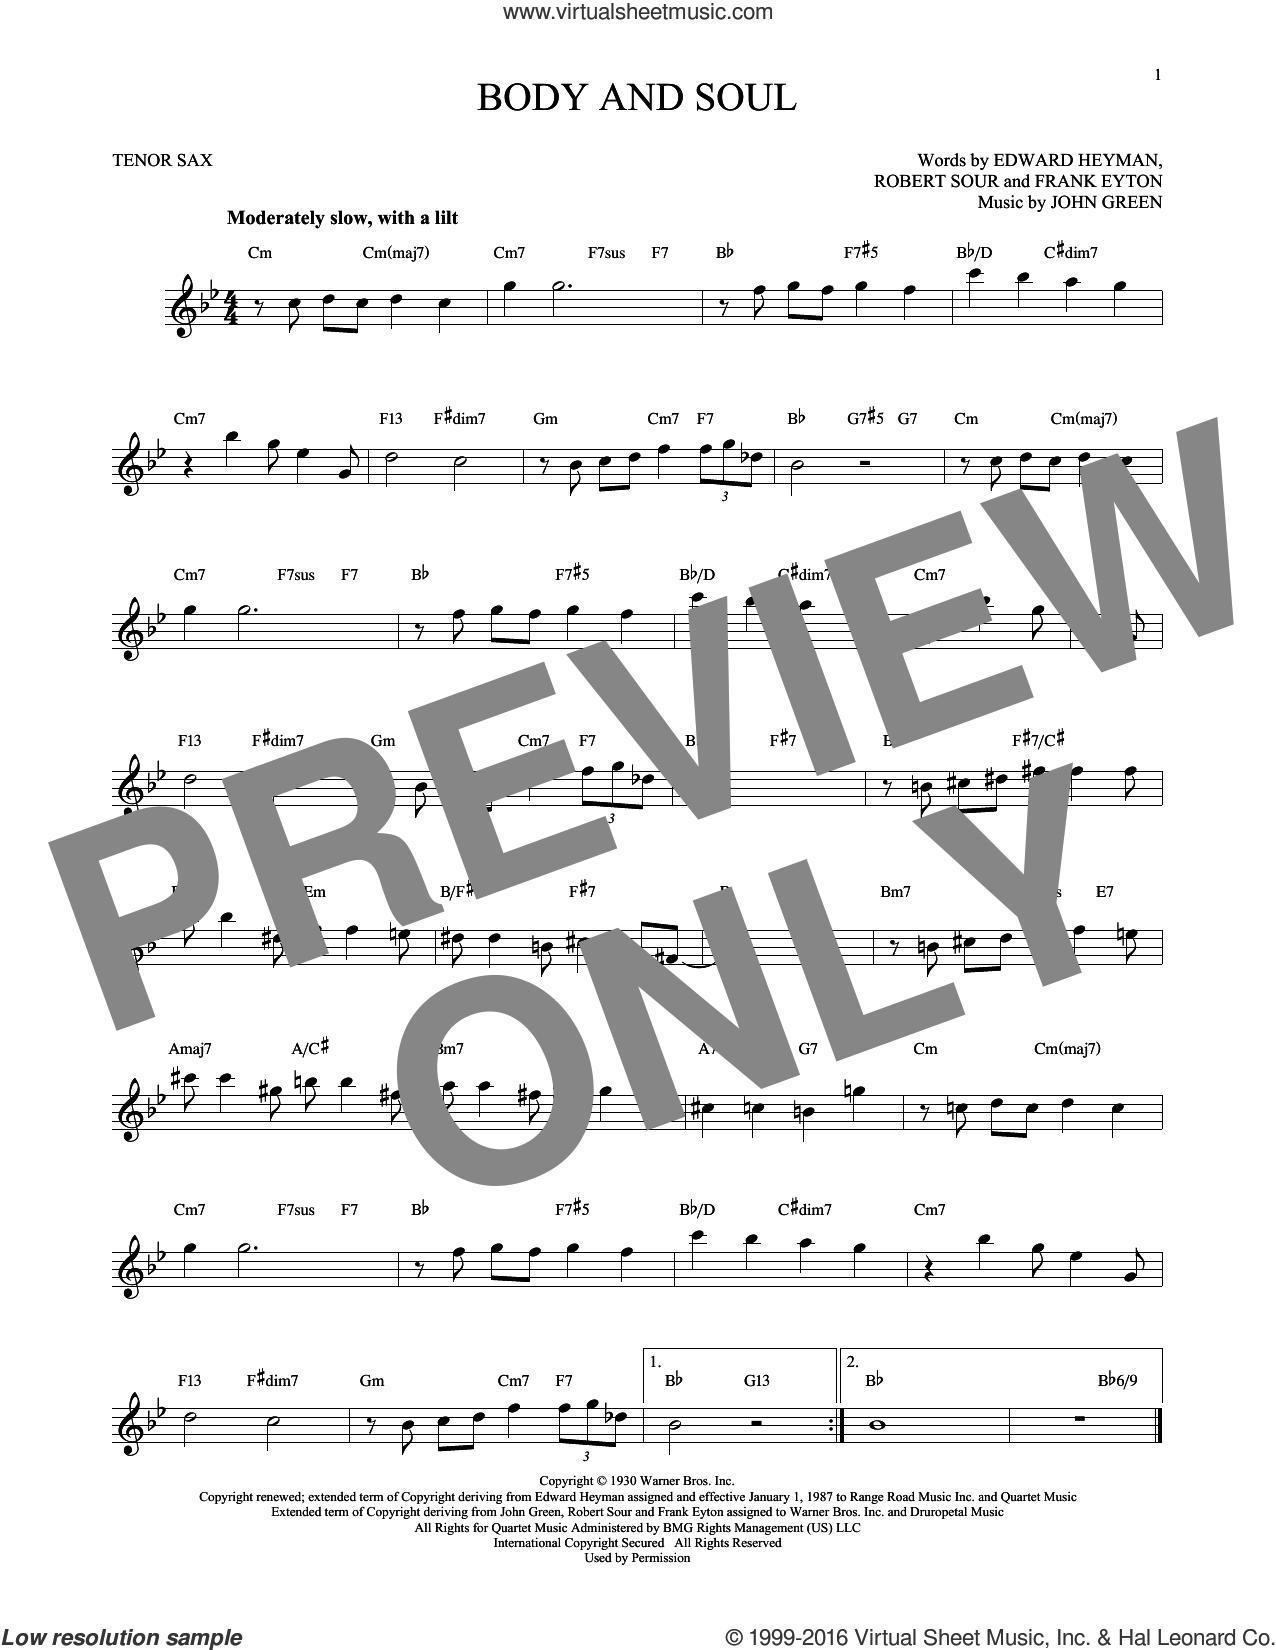 Body And Soul sheet music for tenor saxophone solo by Edward Heyman, Tony Bennett & Amy Winehouse, Frank Eyton, Johnny Green and Robert Sour, intermediate skill level